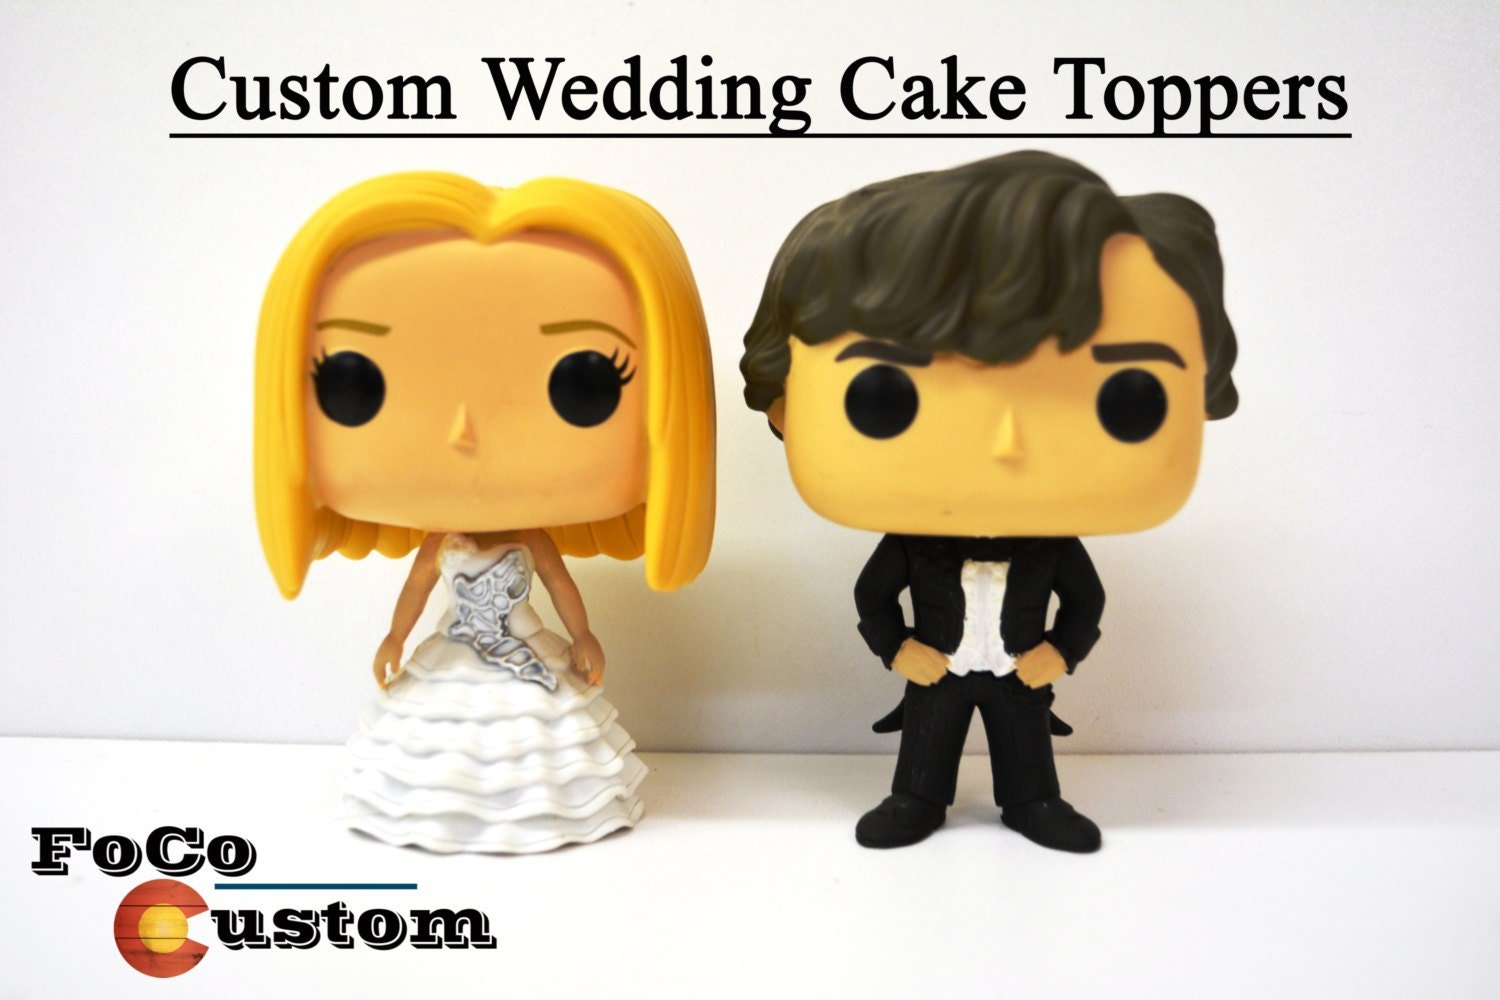 Custom Funko Pop Wedding Cake Toppers Commission Please Send | Etsy